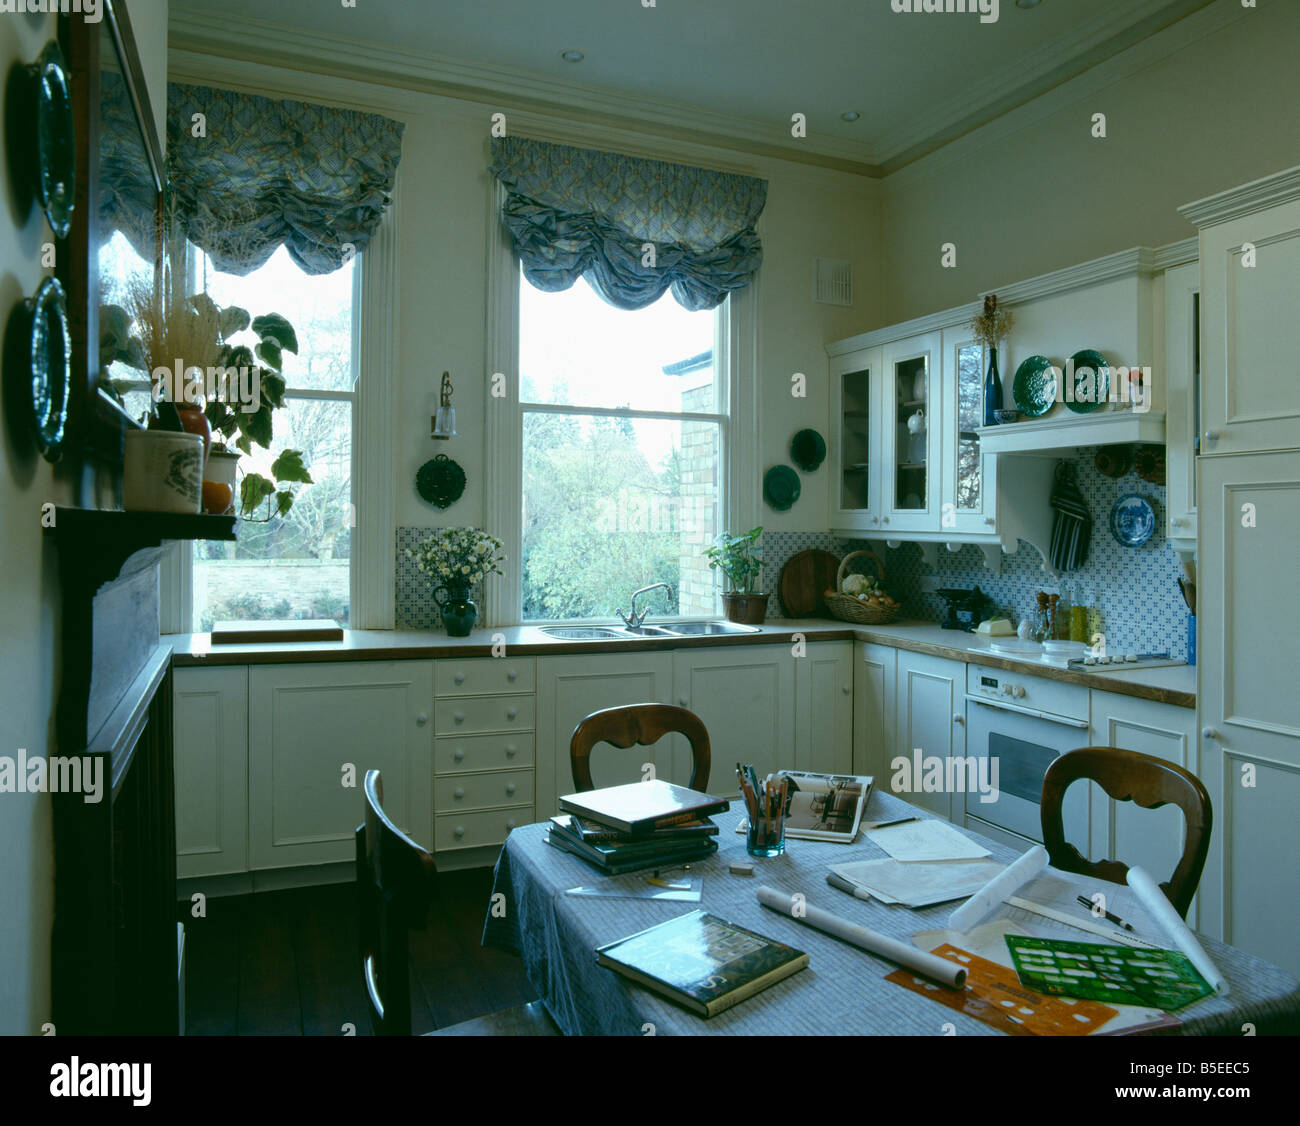 kitchen office desk. Ruched Blinds At Windows In Cream Kitchen With Table Being Used As Office Desk N